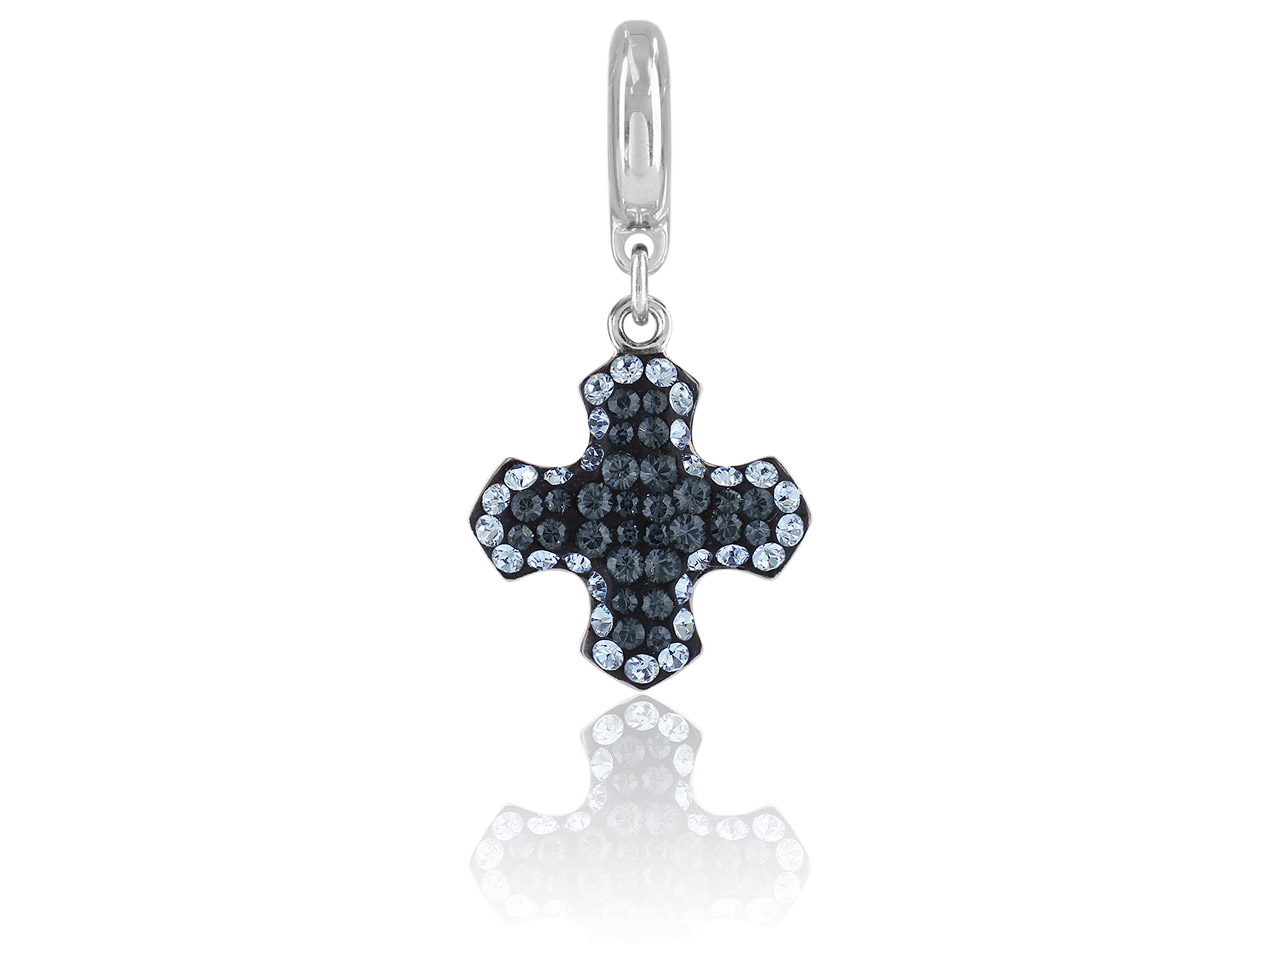 Swarovski Crystal Becharmed Pave   Greek Cross Charm, 14mm, Crystal   Silver Night